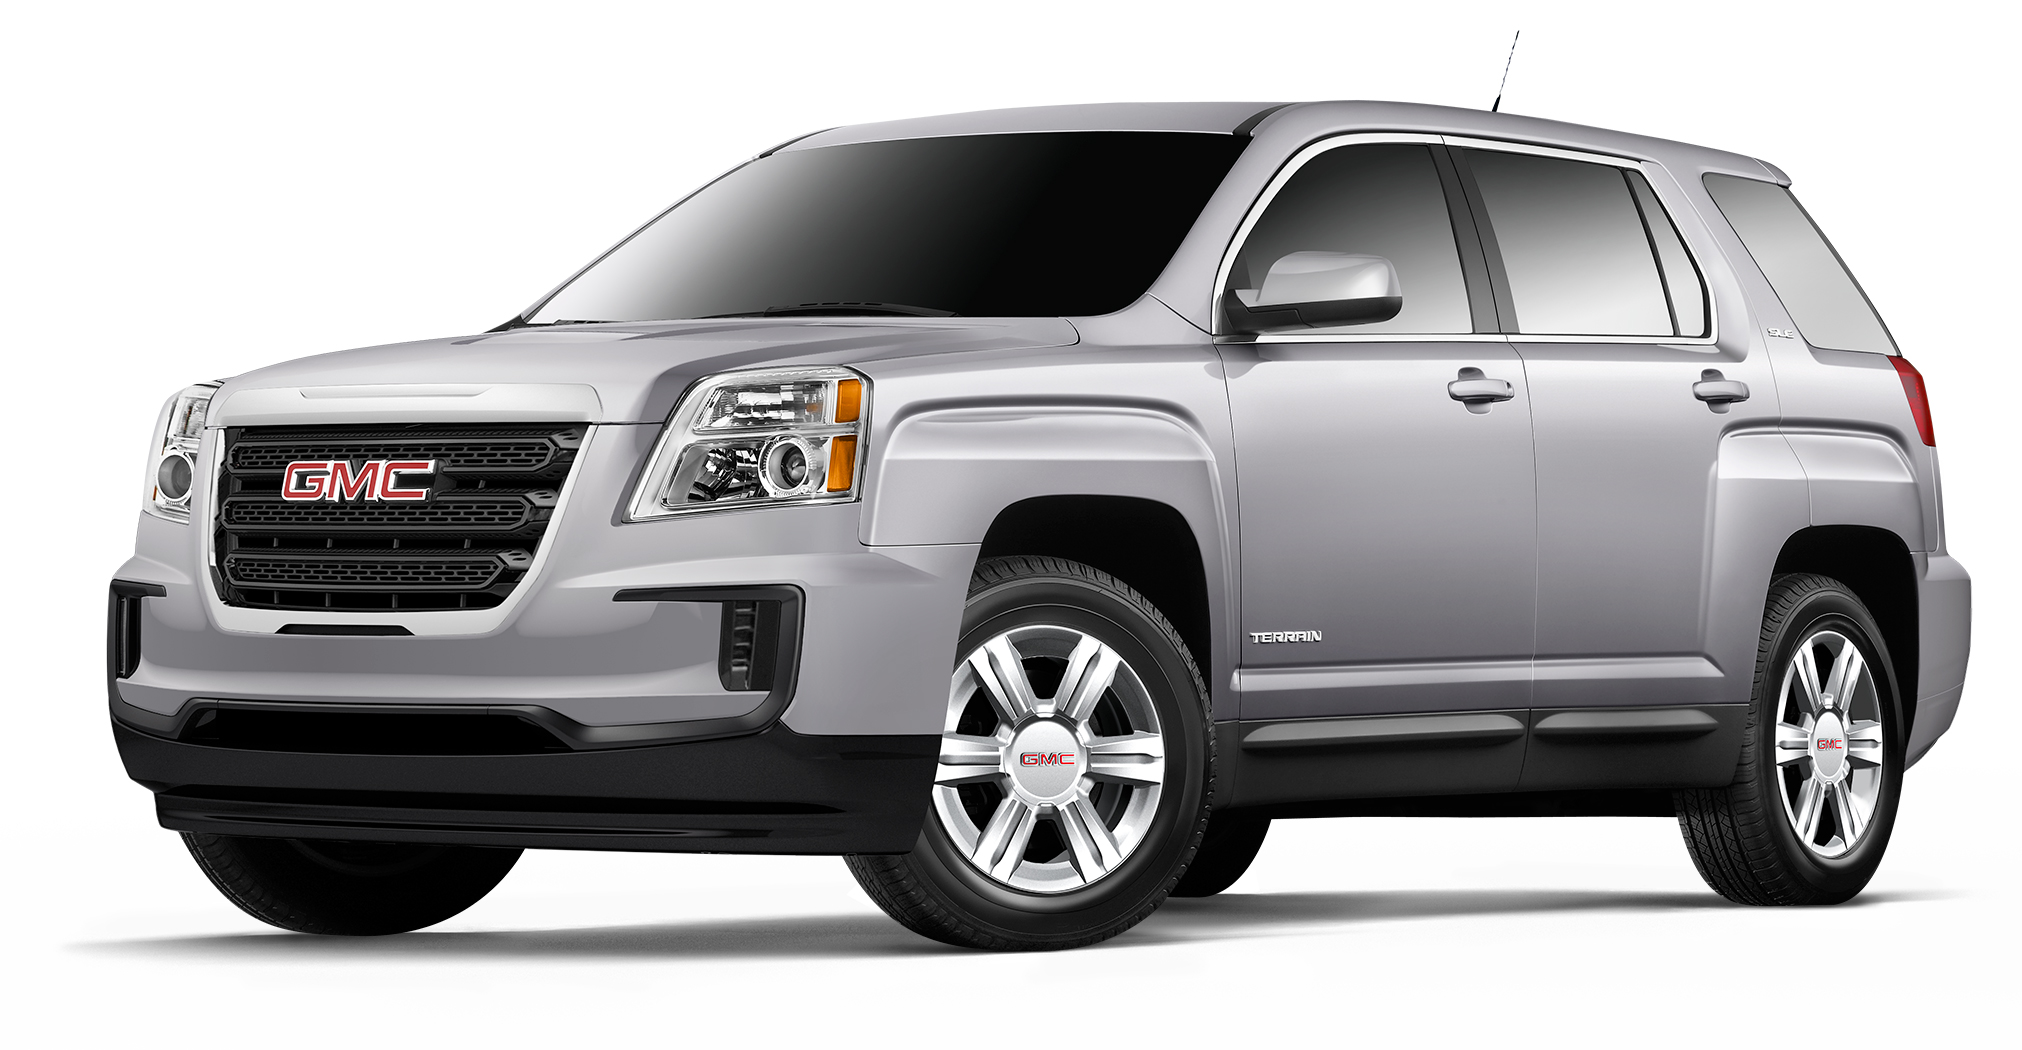 2017 GMC Terrain Winnipeg QuickSilver